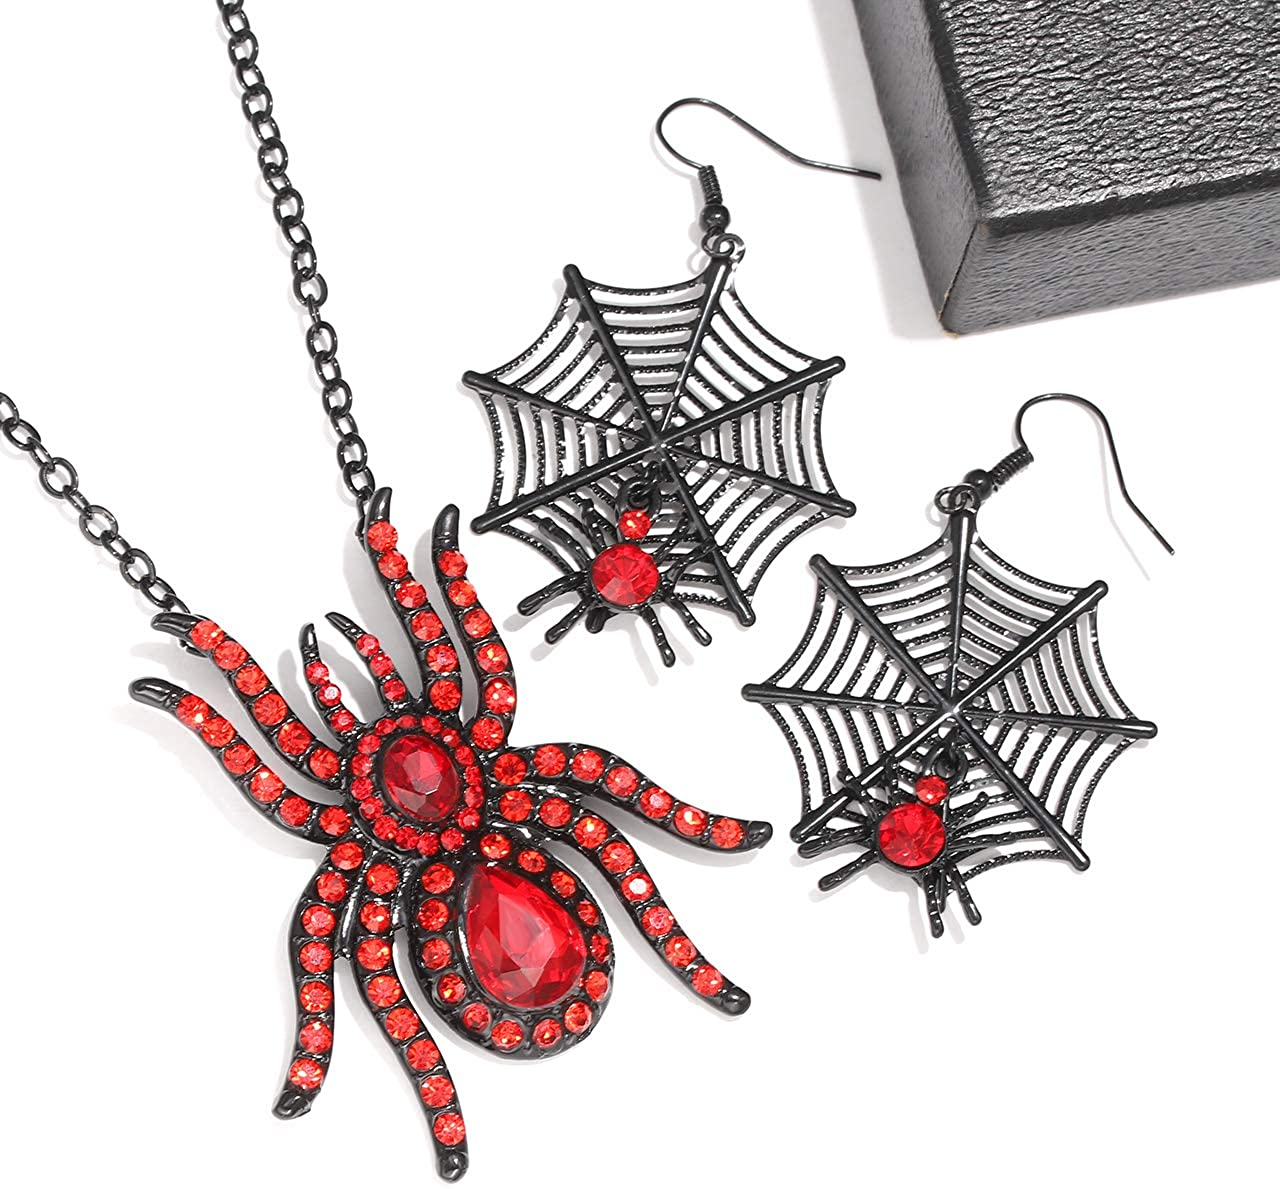 MOLOCH Halloween Spider Jewelry Set Crystal Tarantula Pendant Necklaces Spider Web Dangle Earrings Set Halloween Party Costume Jewelry for Women